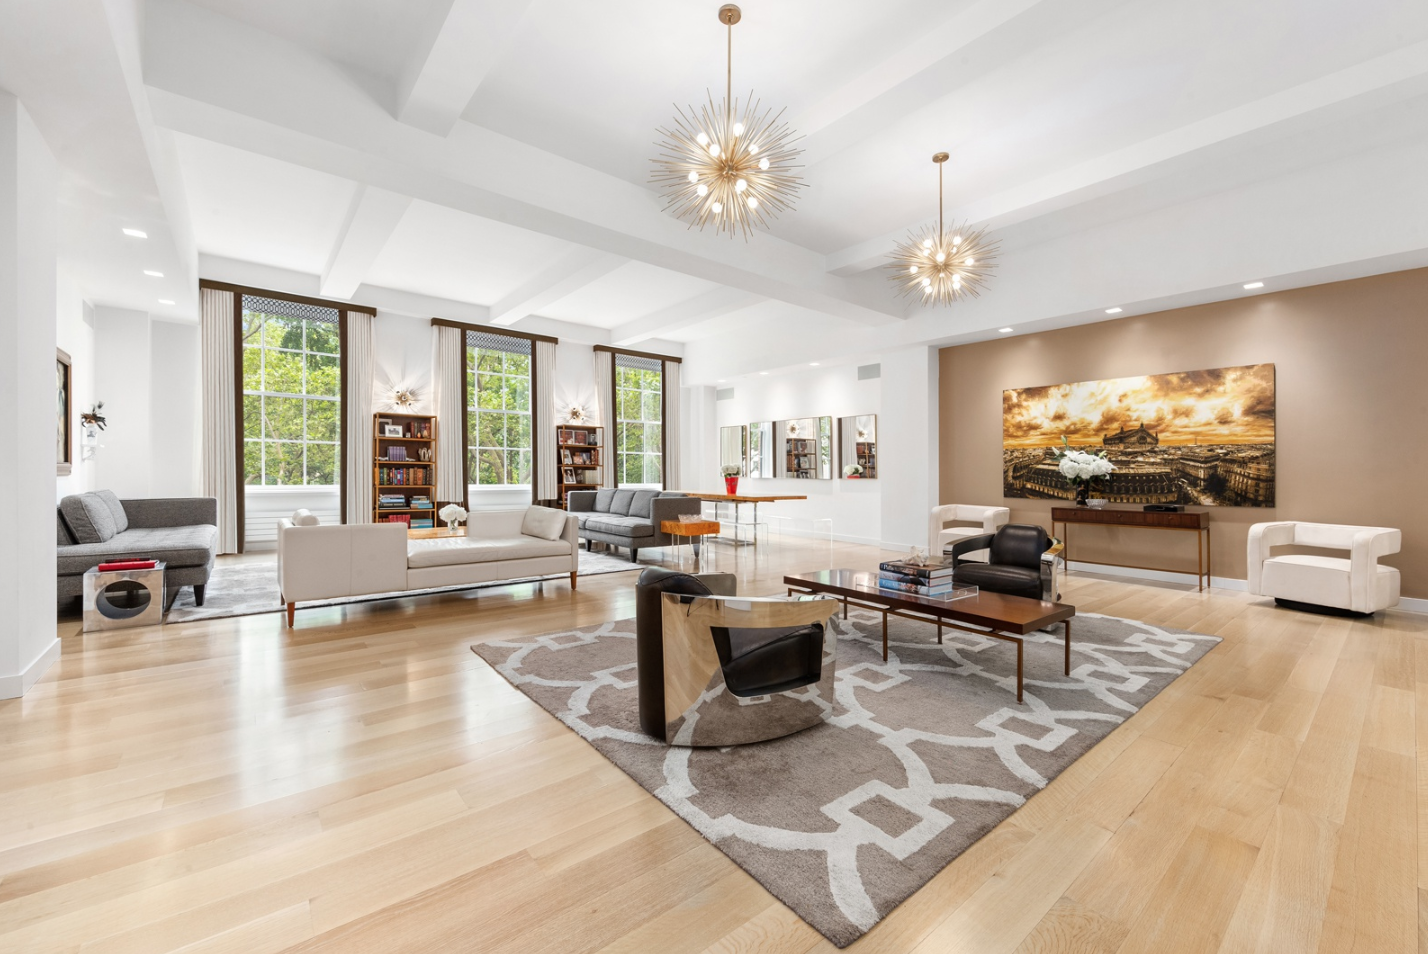 21 EAST 26TH STREET, 3 - $15,950,000 // 4 Beds // 5.5 Baths // 4,967 SQFTA lavish floor-through condo graced with sublime finishes and direct views of Madison Square Park. Features of this apartment include gorgeous wide-plank rift-oak flooring, soaring beamed ceilings, central heating and cooling, a Crestron smart home system, key-locked elevator access, a laundry room with a huge linen closet and a side-by-side washer/dryer, and beautiful sash windows with northern, southern, and western exposure.